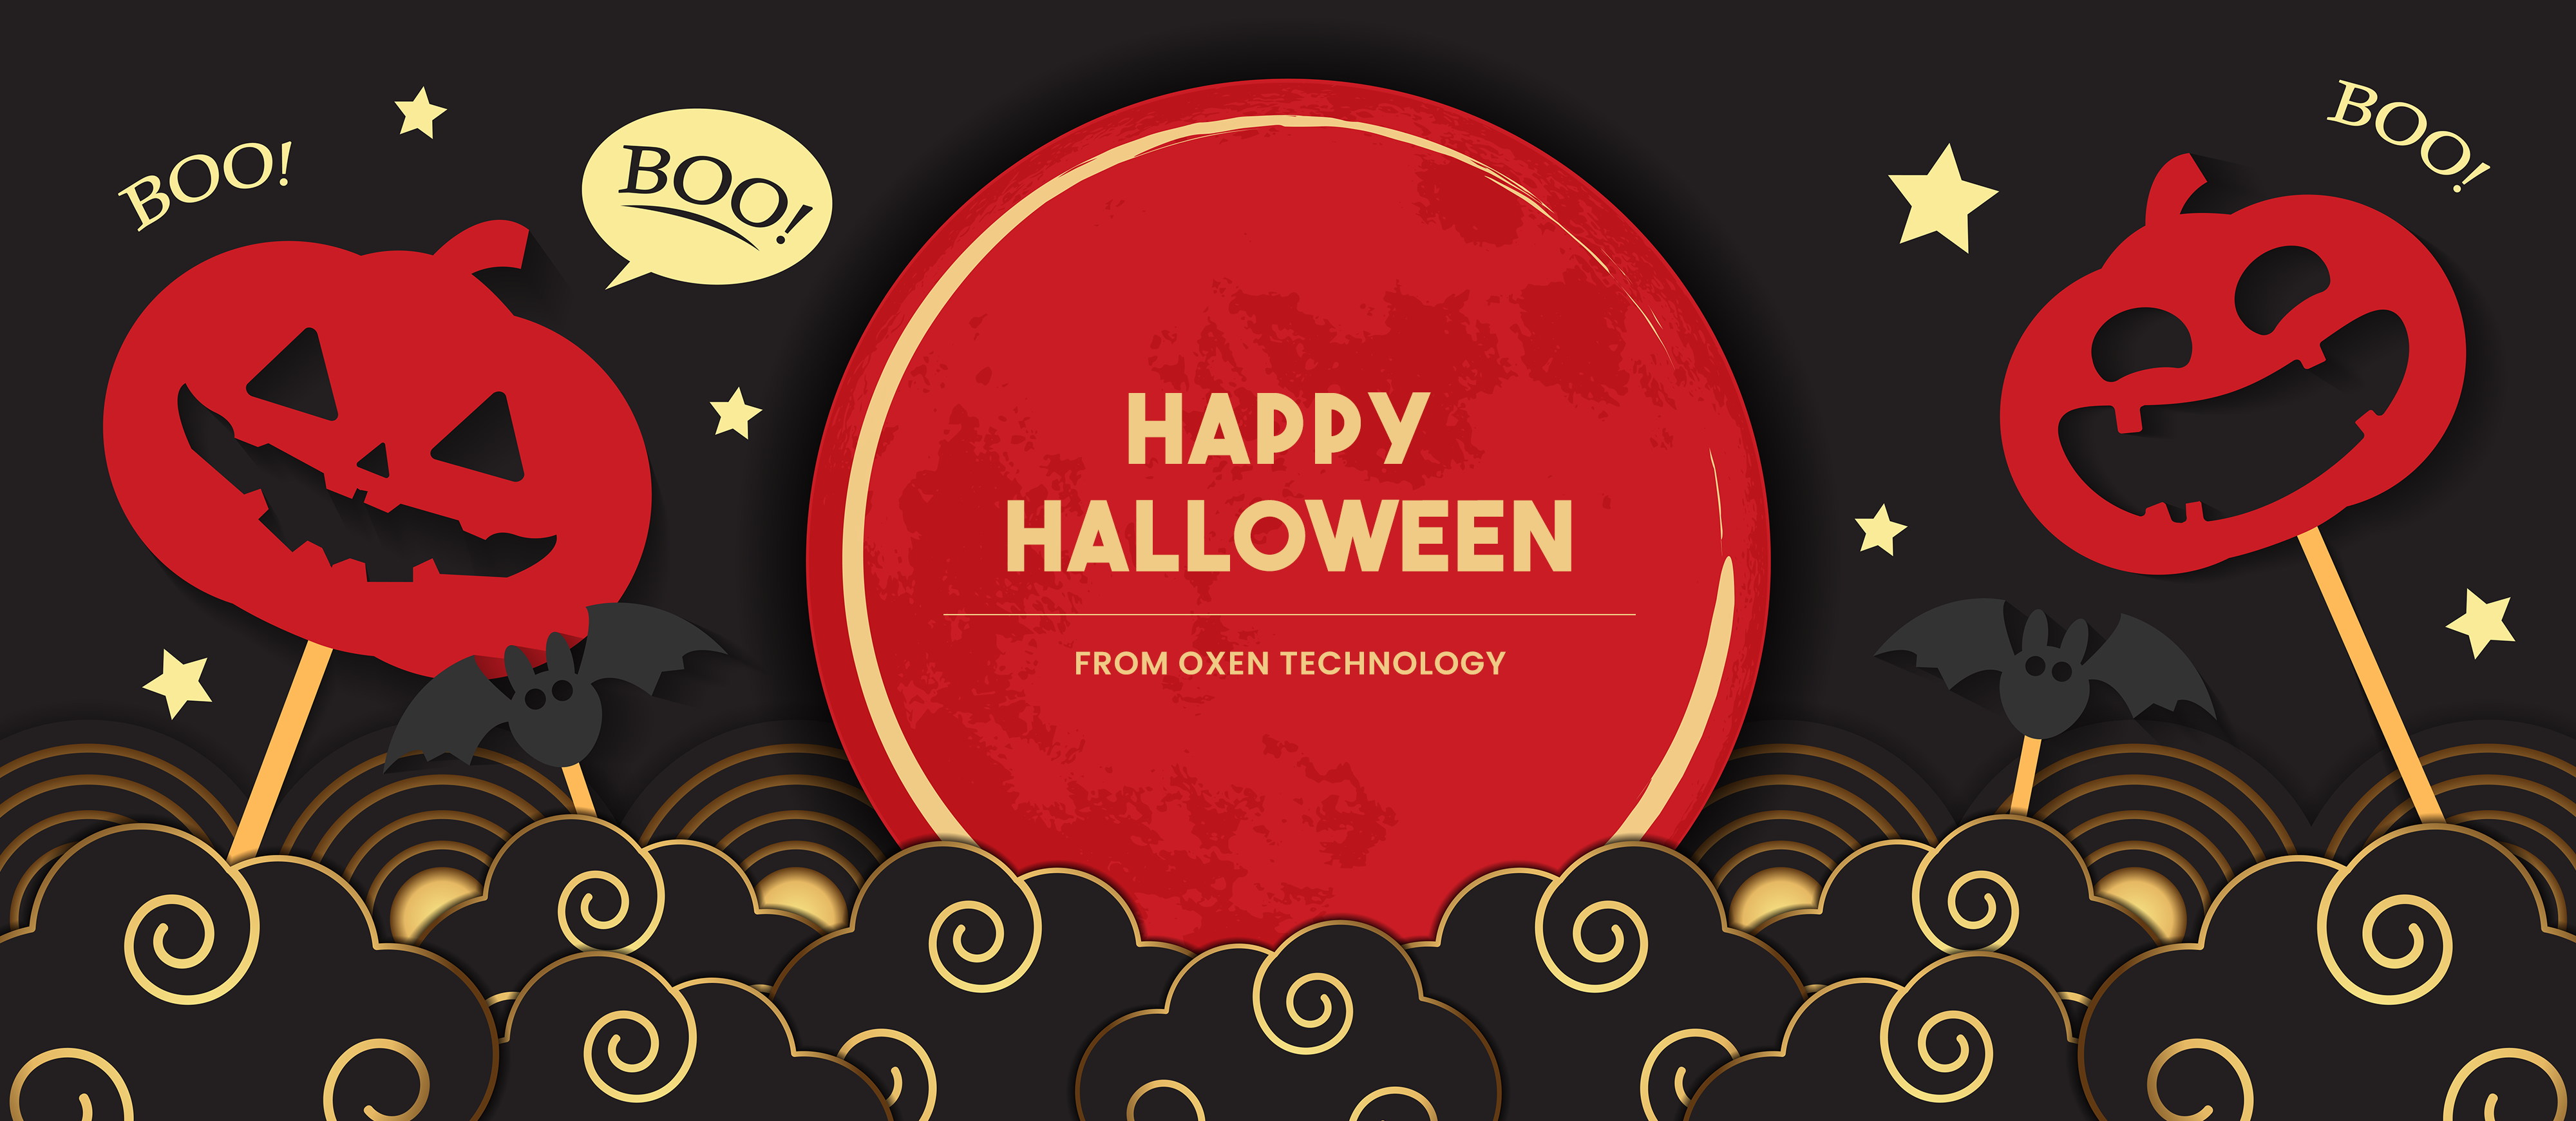 Happy Halloween from OXEN Technology